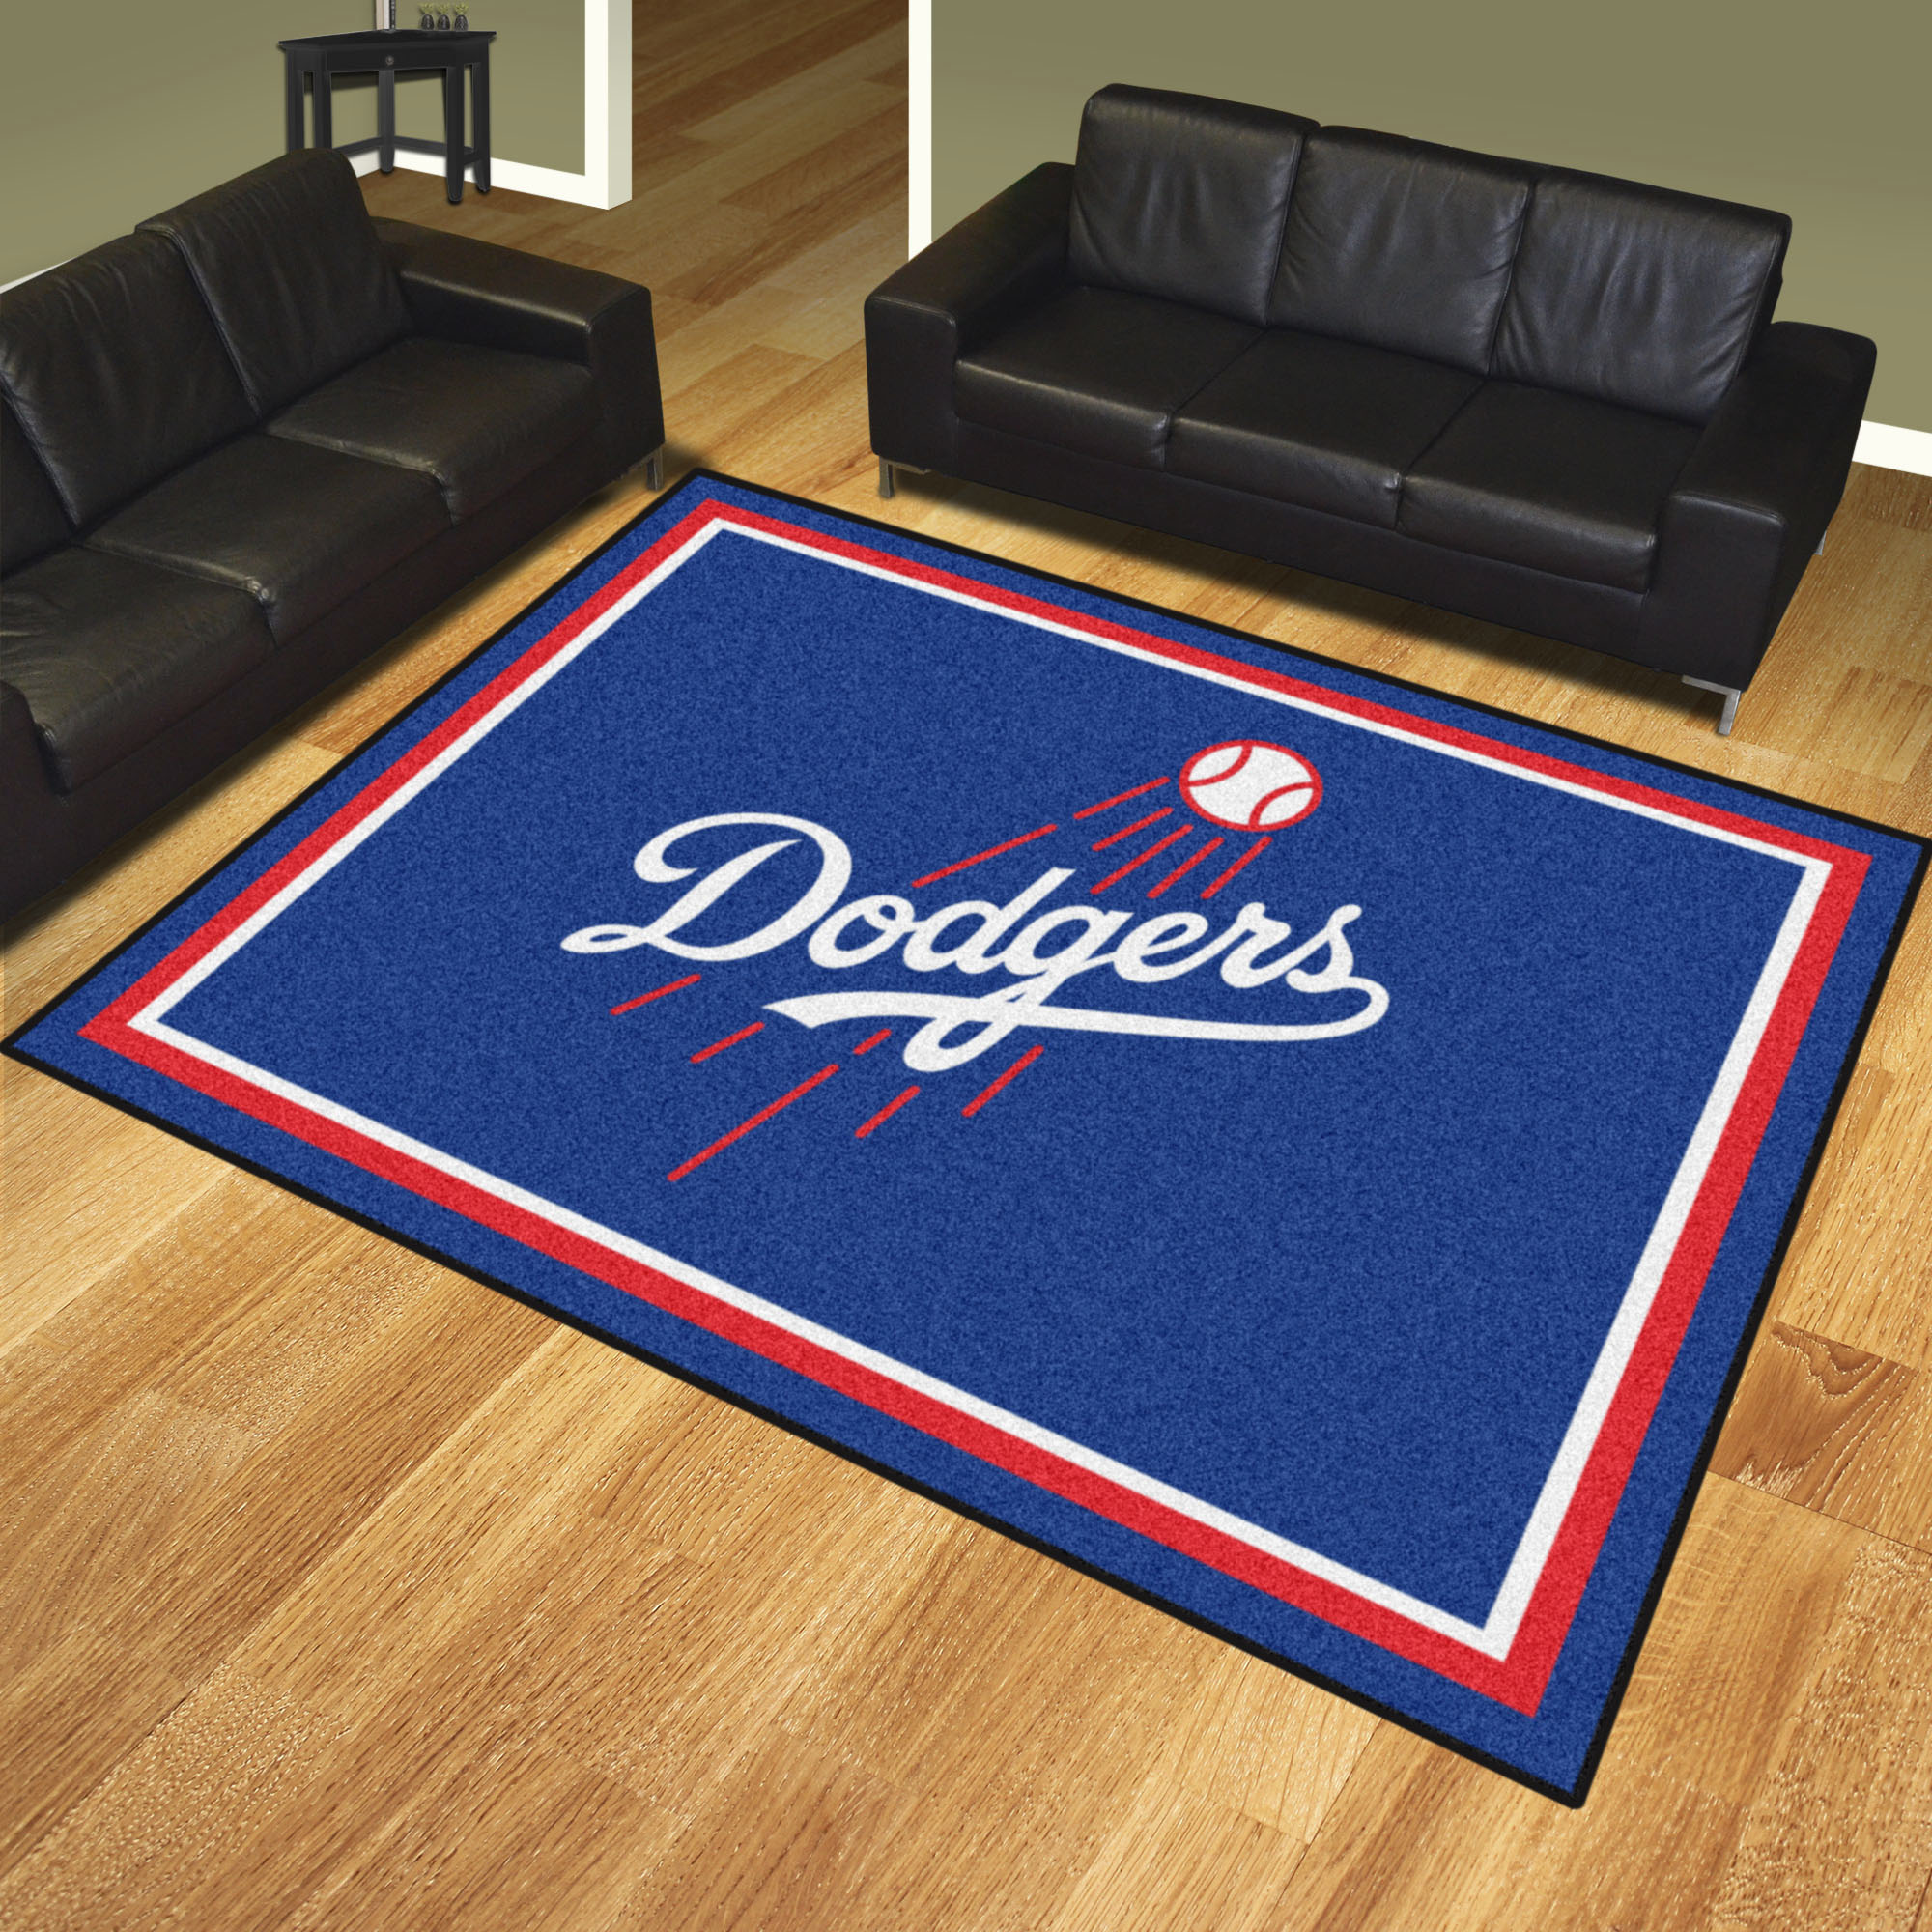 Los Angeles Dodgers Ultra Plush 8x10 Area Rug